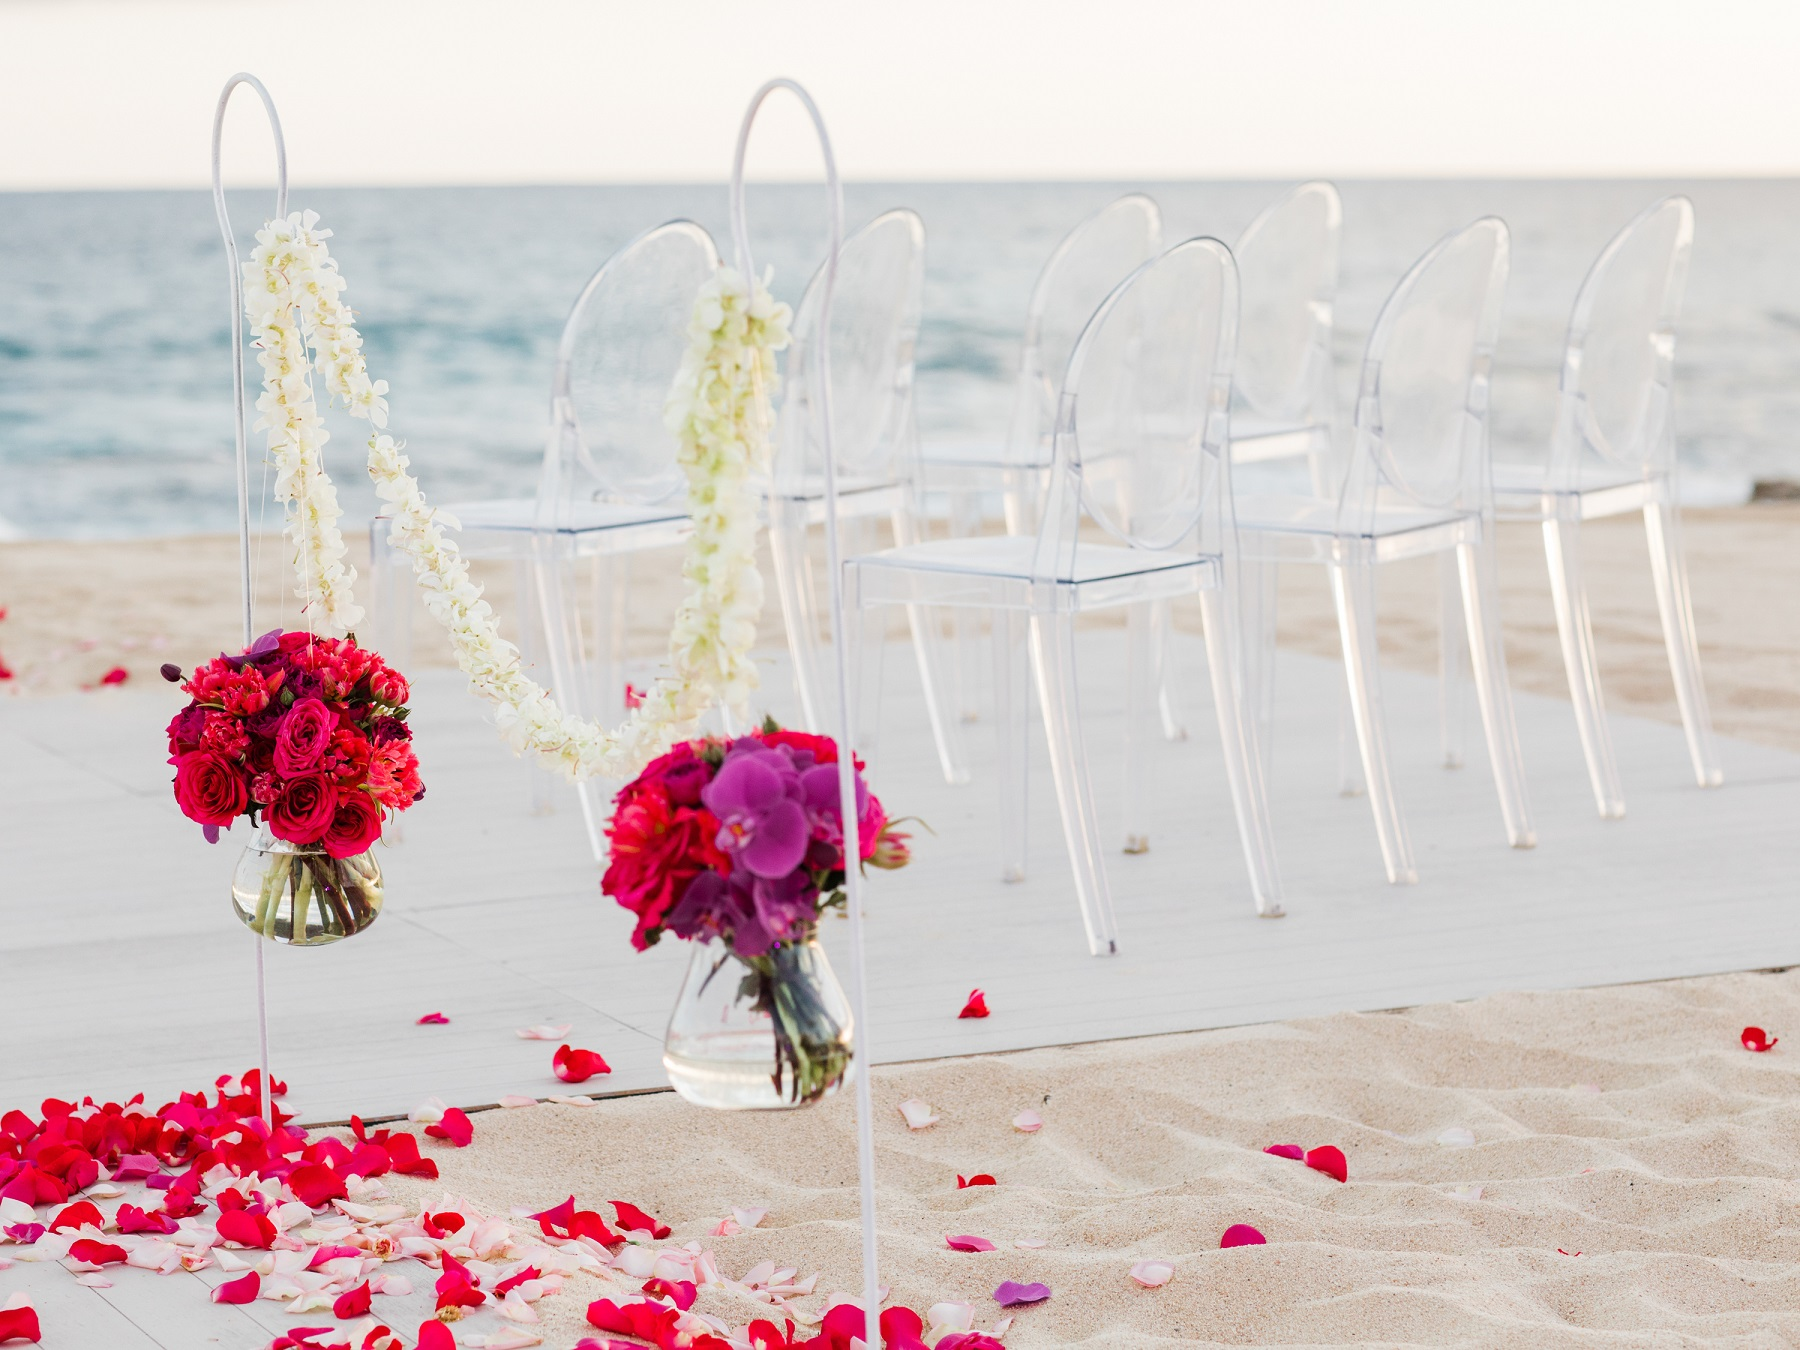 lucite wedding chairs red flowers beach weddings mexico elena damy